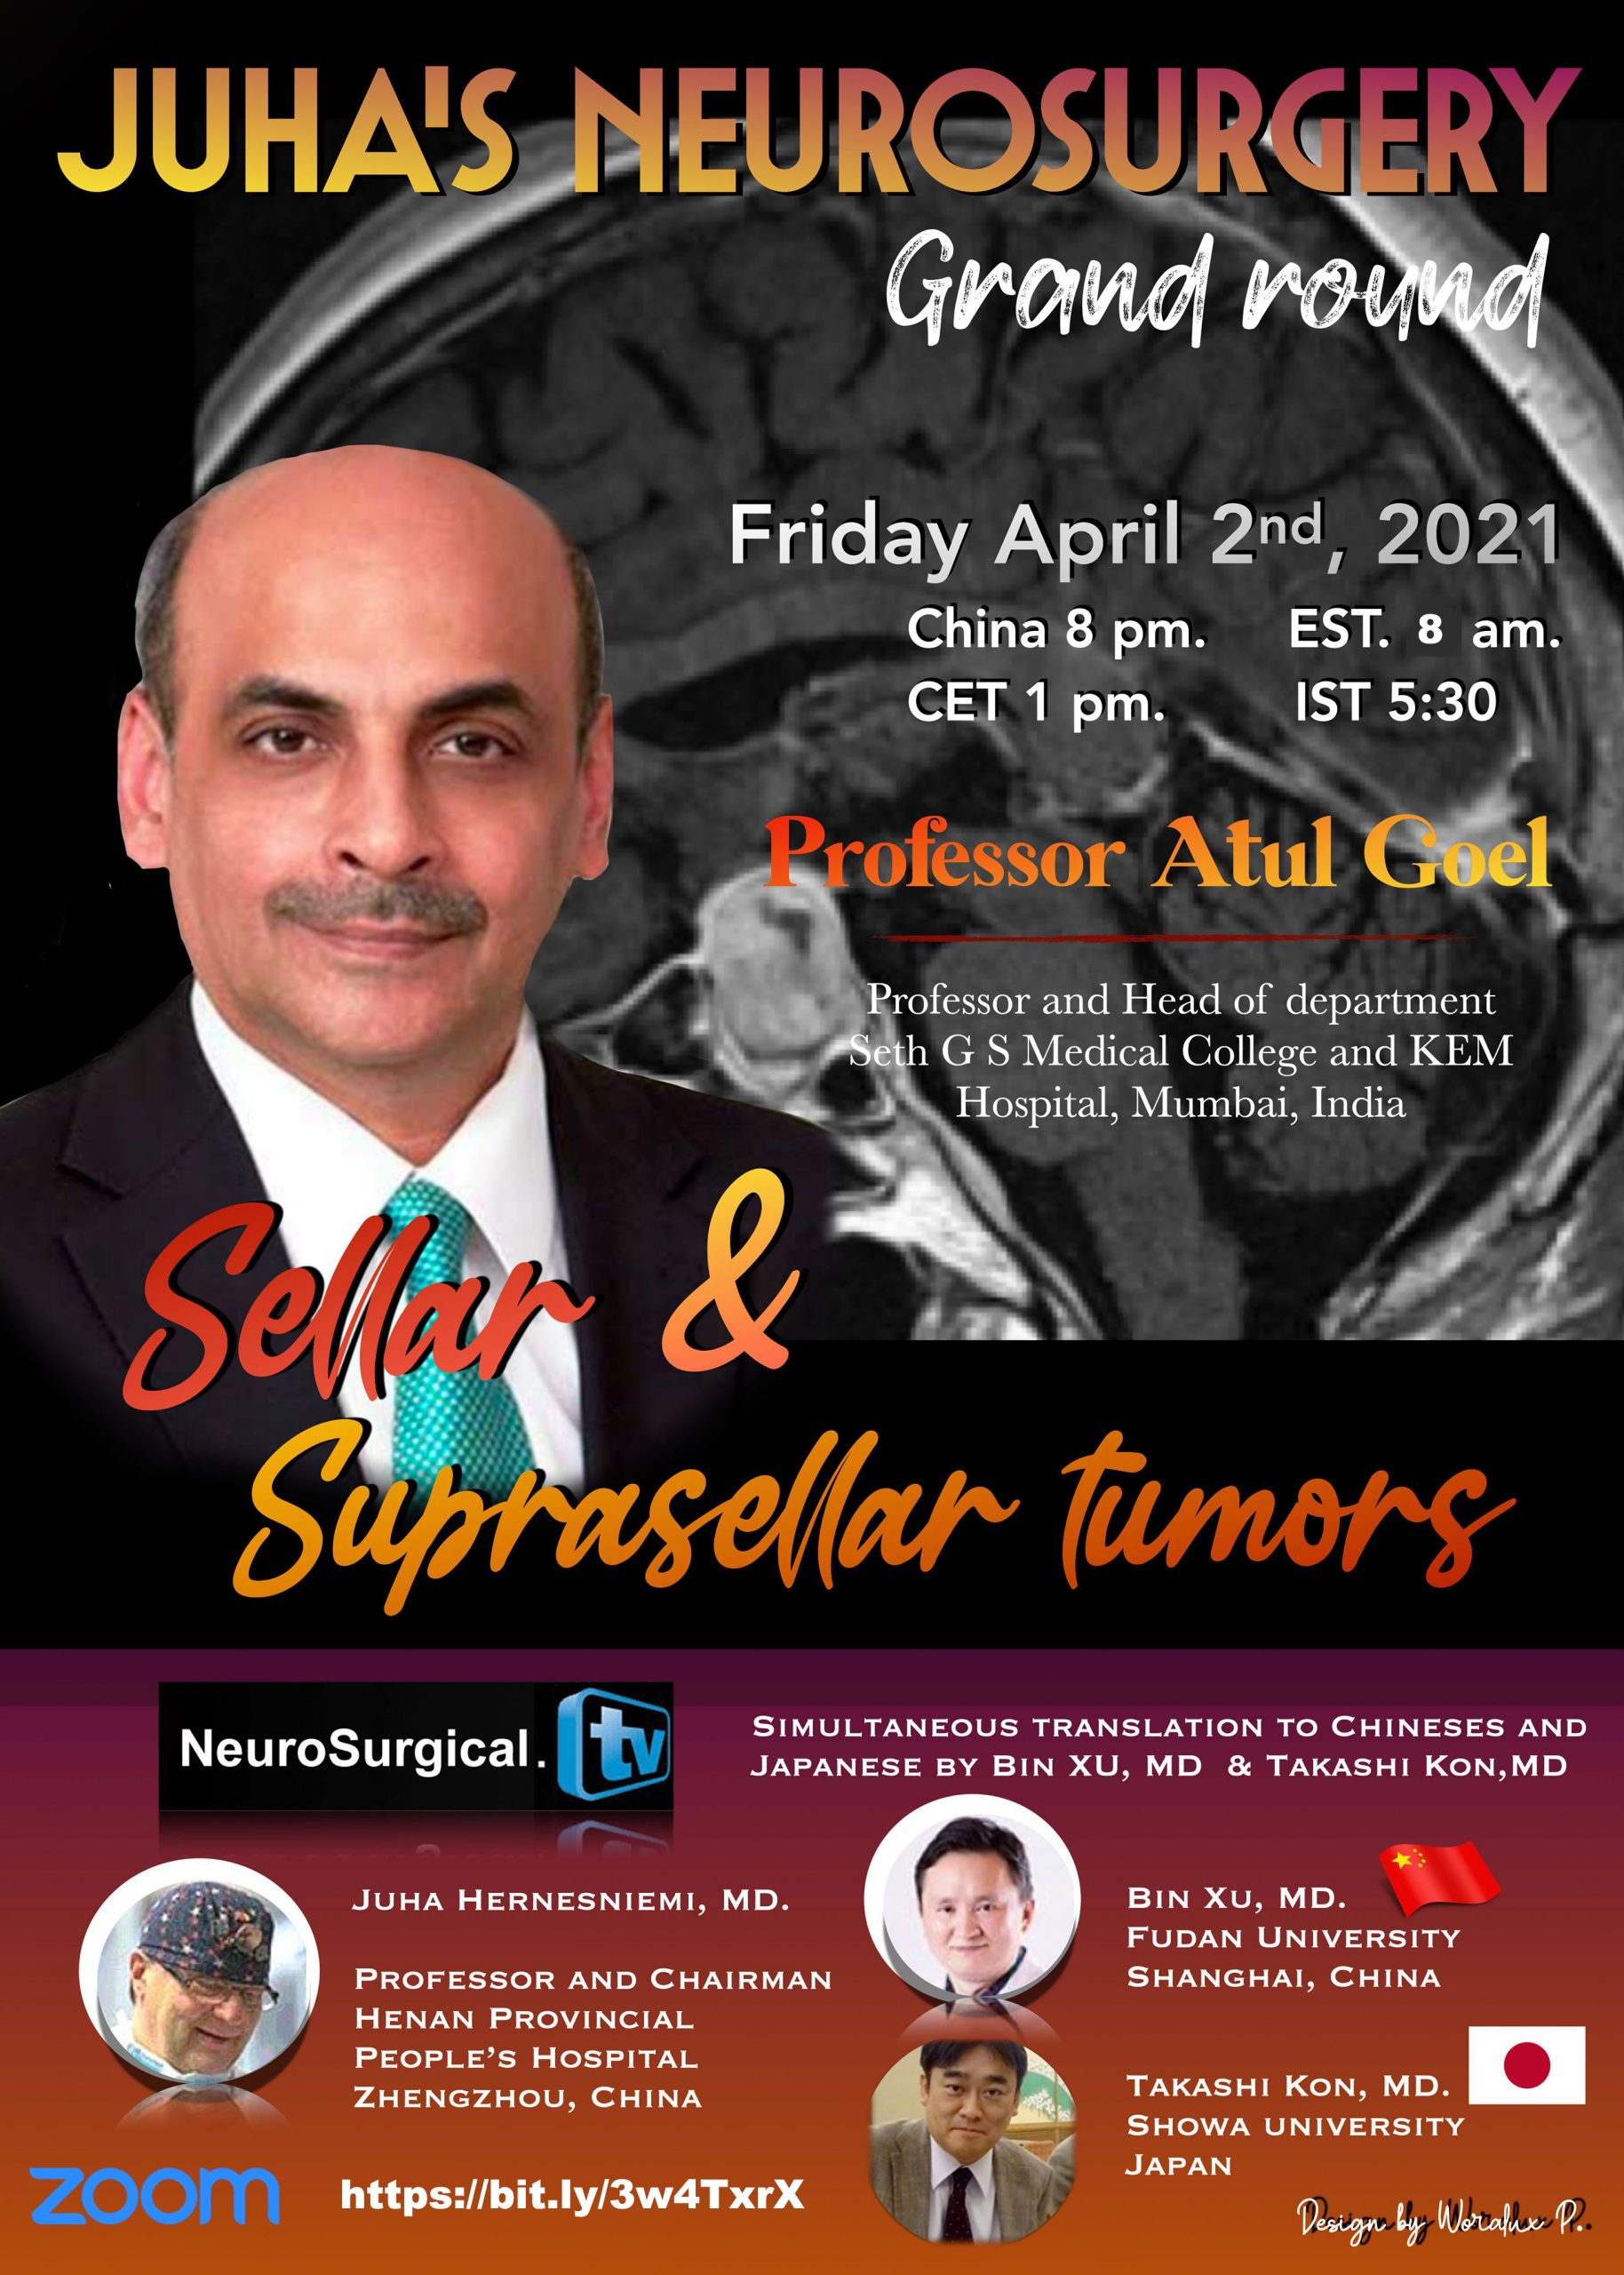 In about an Hour, Juha's China Neurosurgery Grand Rounds, with Atul Goel presenting………………